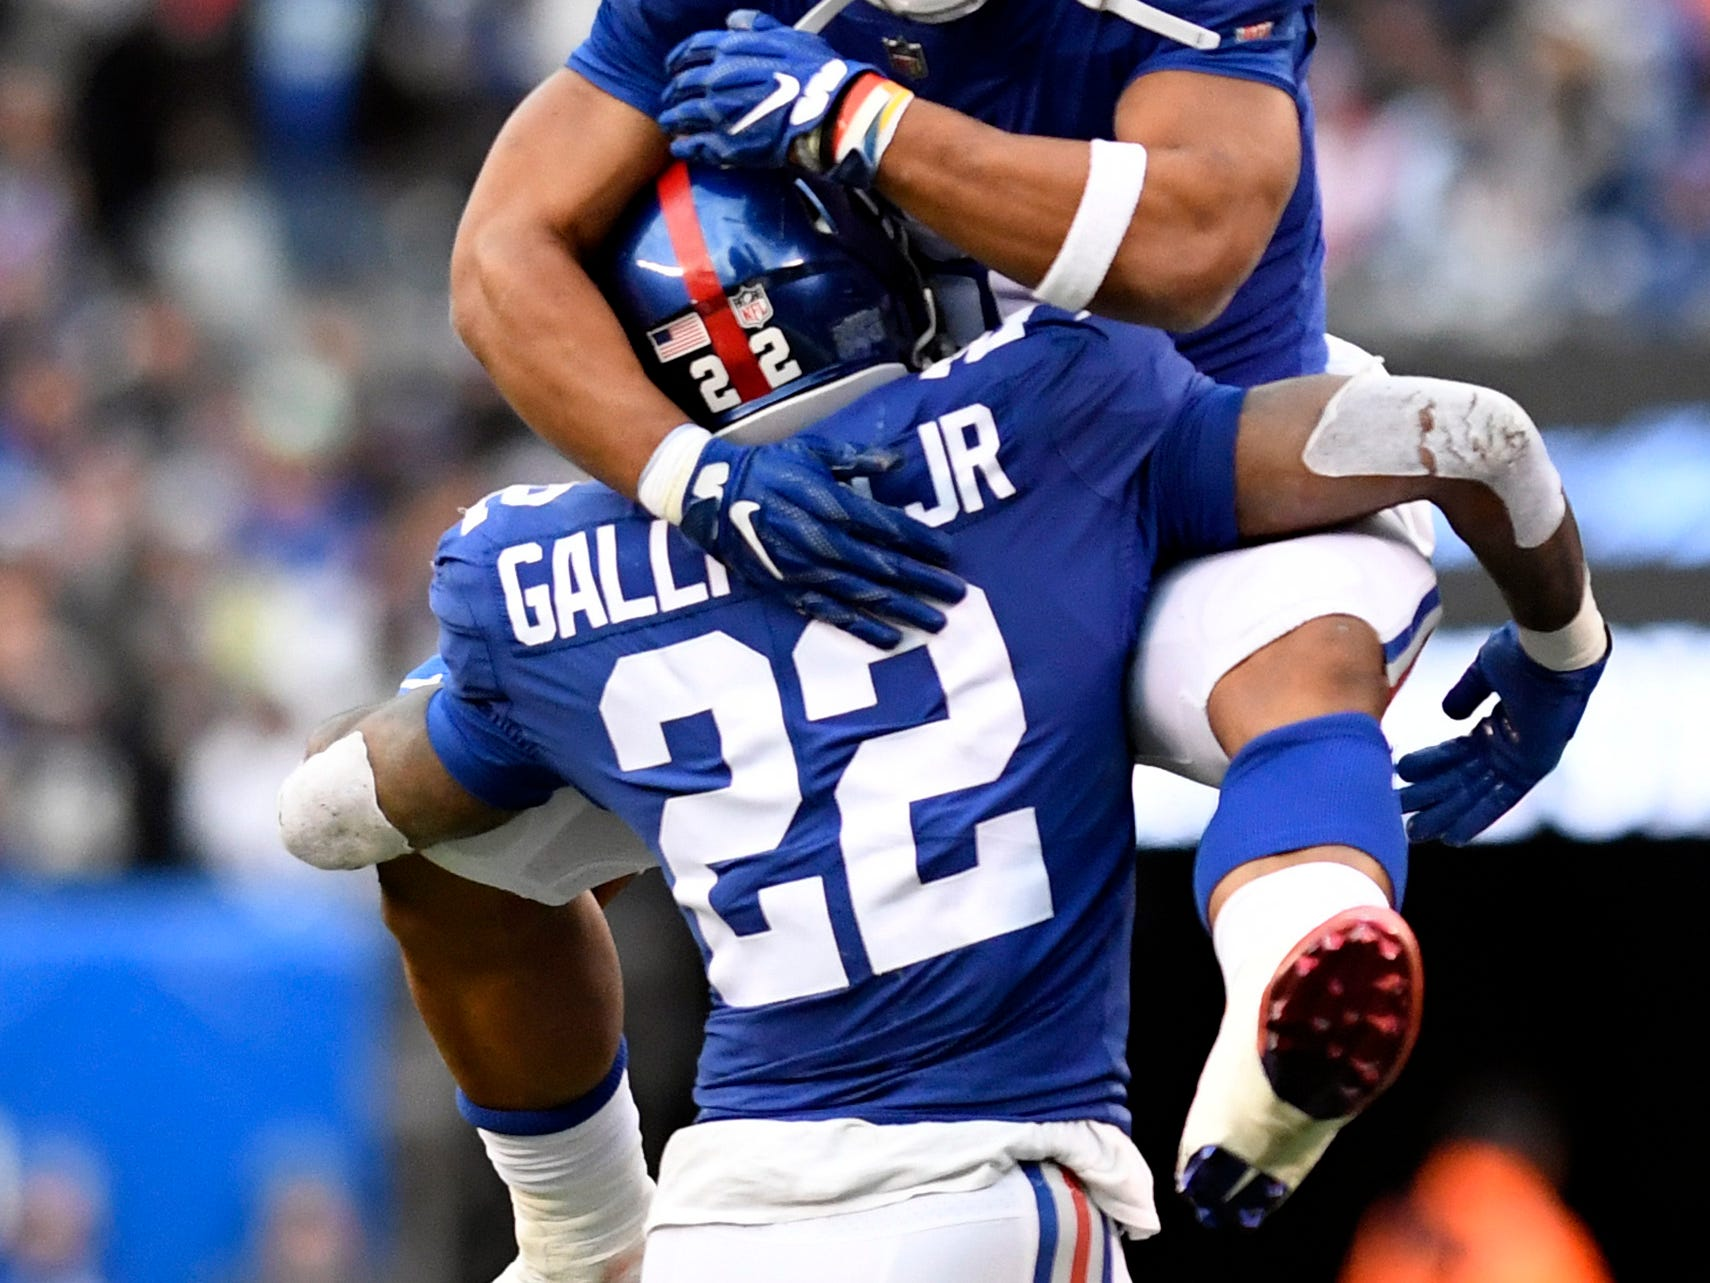 New York Giants running back Saquon Barkley jumps on Wayne Gallman (22) after Gallman's touchdown in the fourth quarter. The New York Giants lose to the Dallas Cowboys 36-35 on Sunday, Dec. 30, 2018, in East Rutherford.